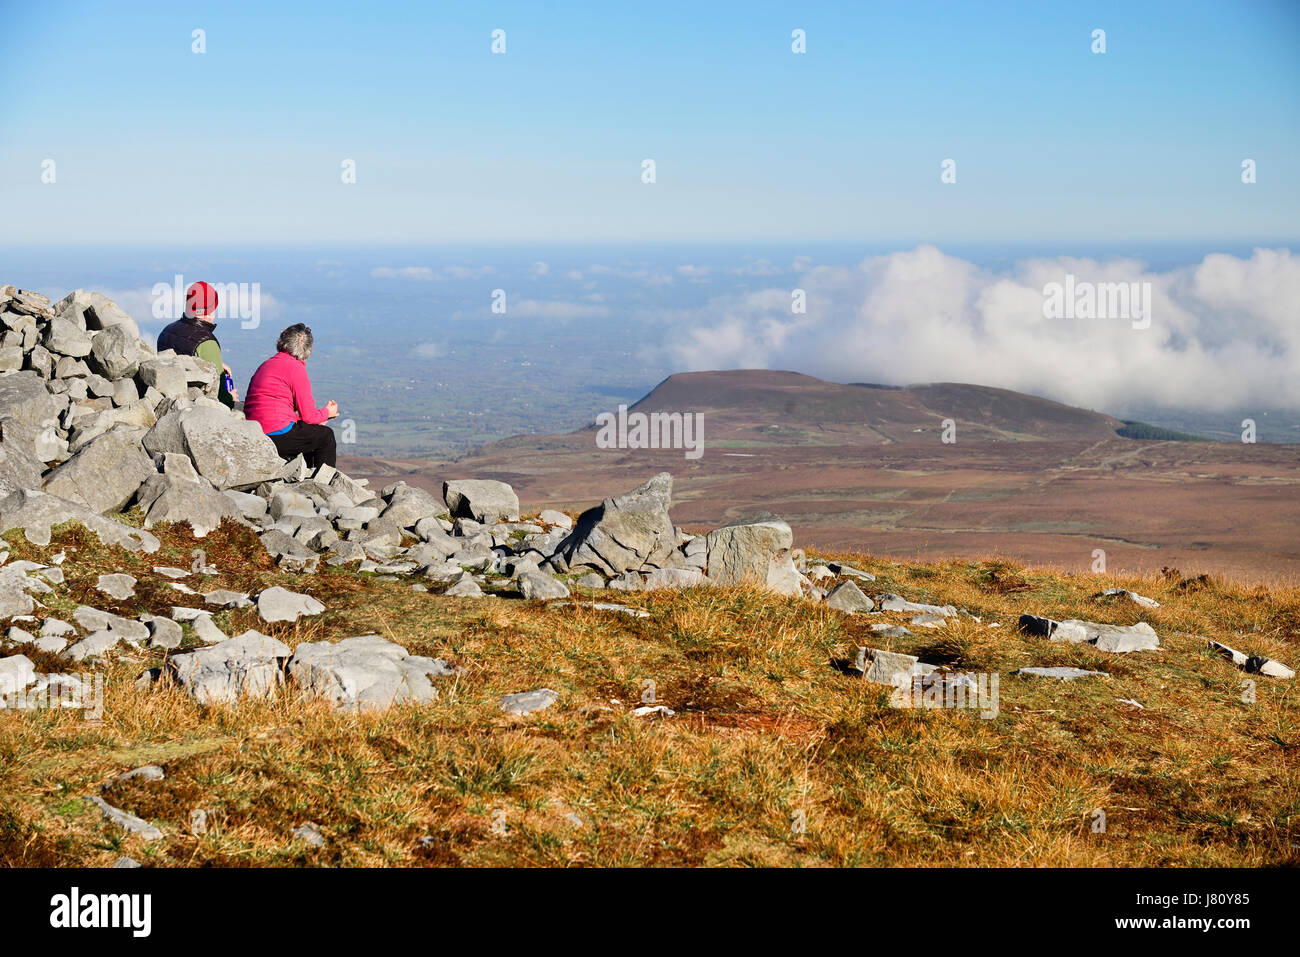 Ireland, County Fermanagh, Cuilcagh Mountain Park, Hikers sitting at the edge of a prehistoric cairn enjoying the - Stock Image